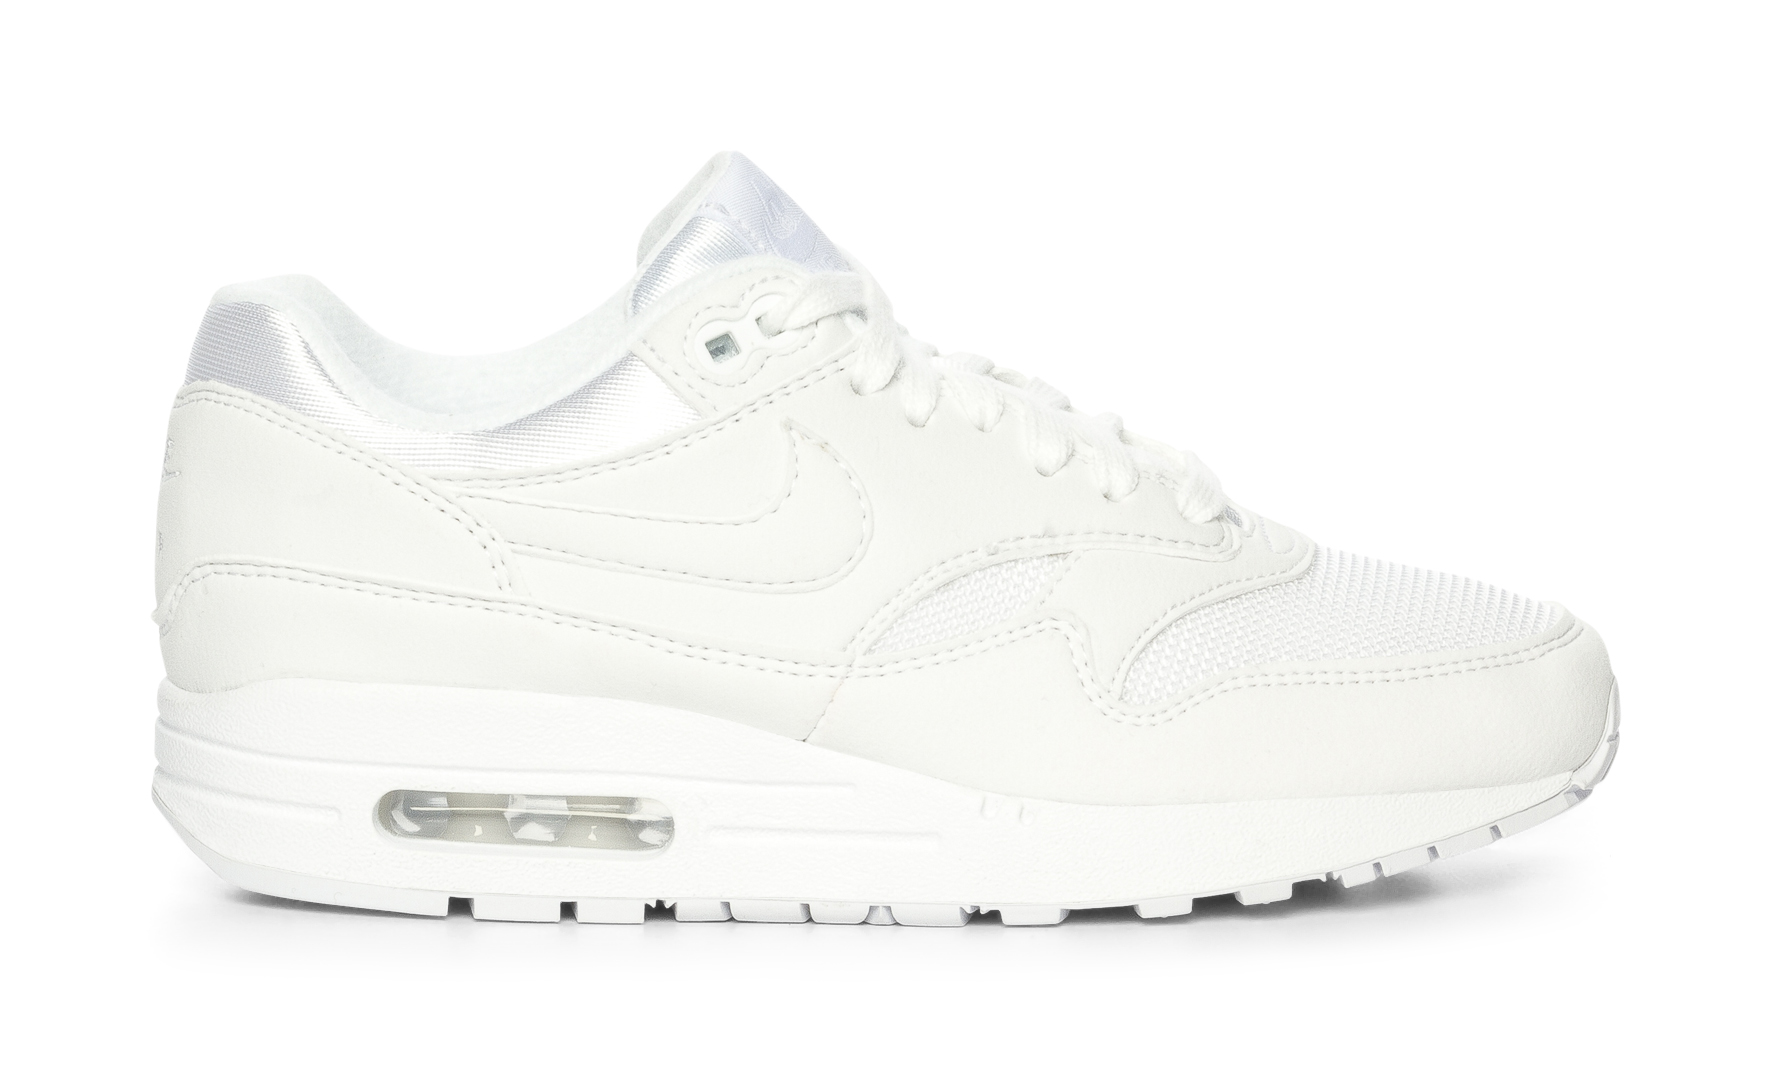 best website 56e56 e3a4b Nike Air Max 1 - Vita 316701 feetfirst.se